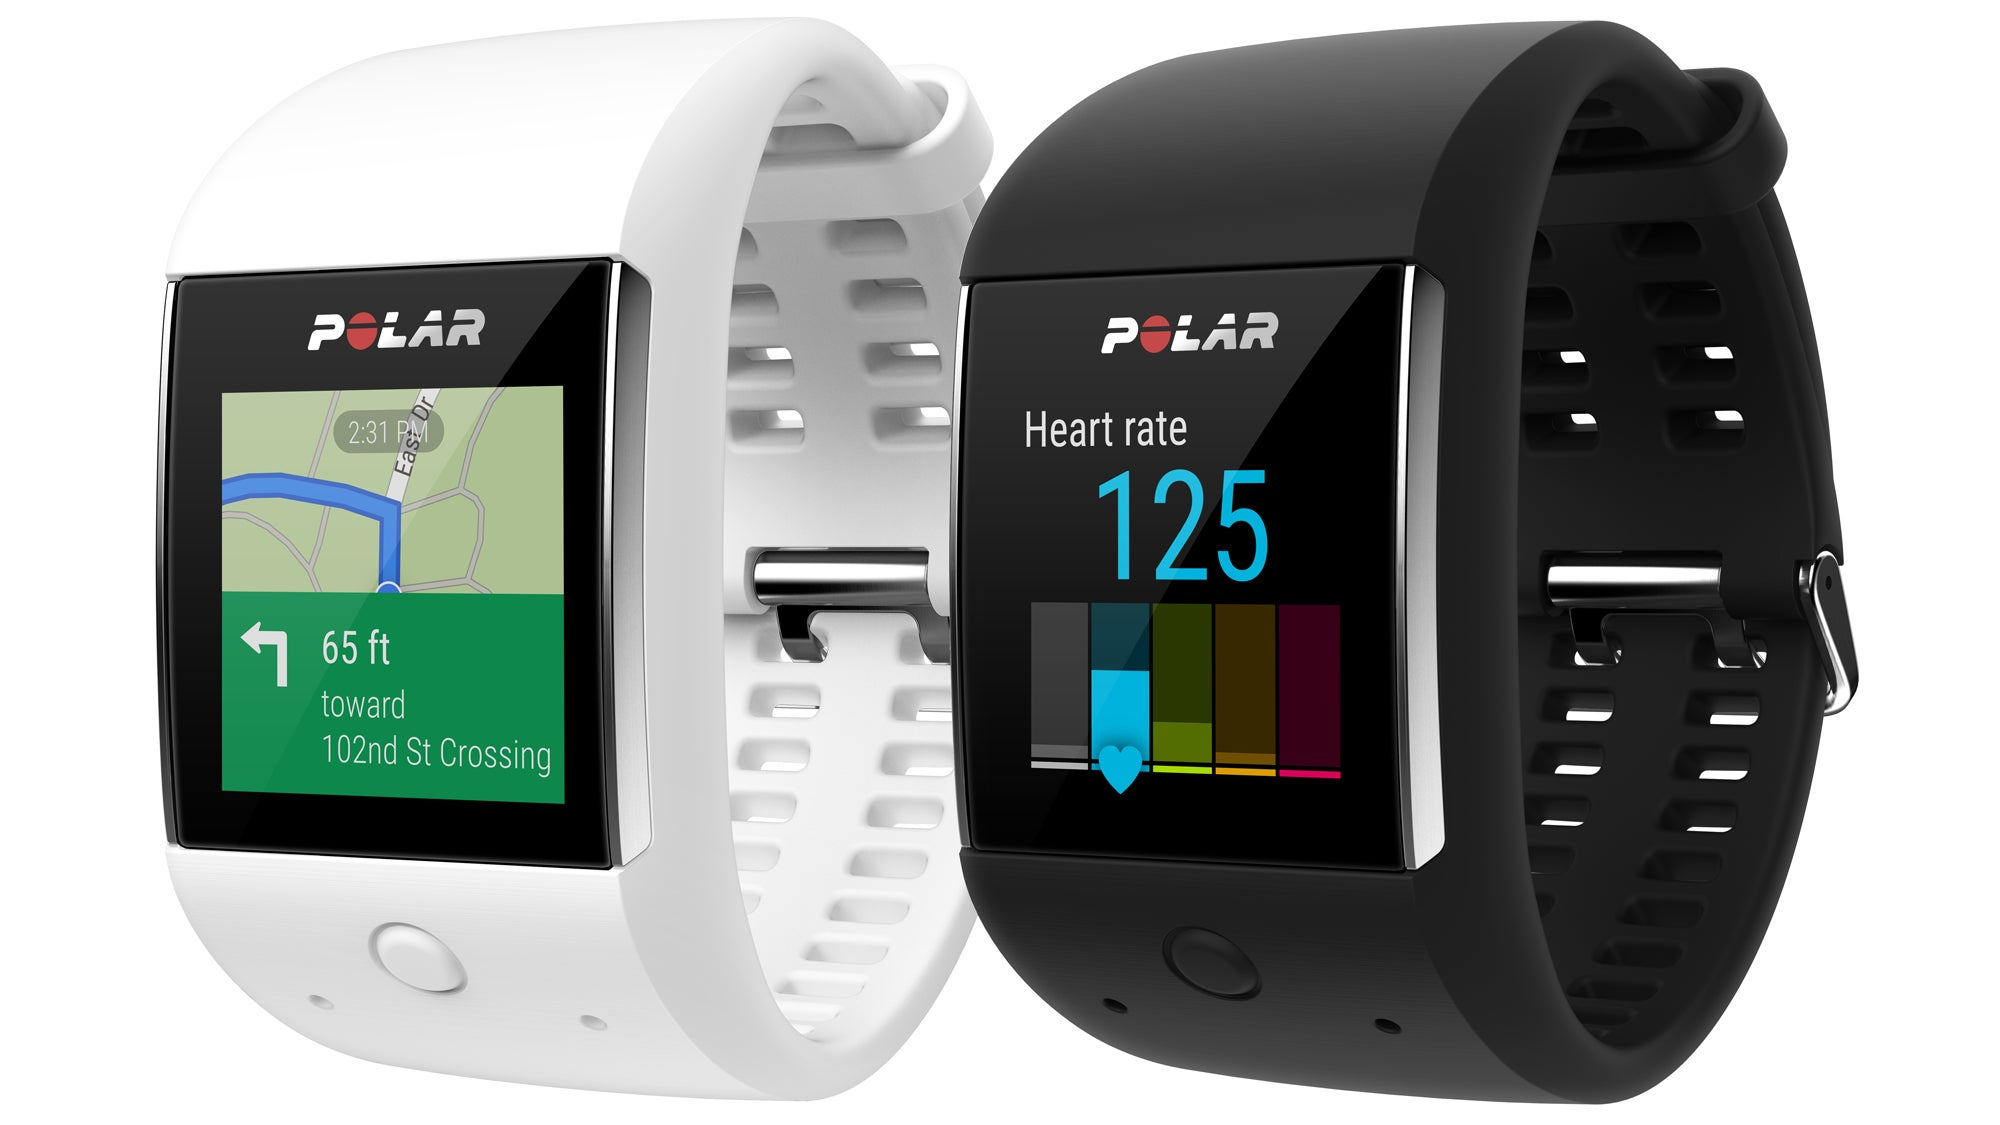 Polar's New Fitness Tracker Is A Full-On Android Smartwatch